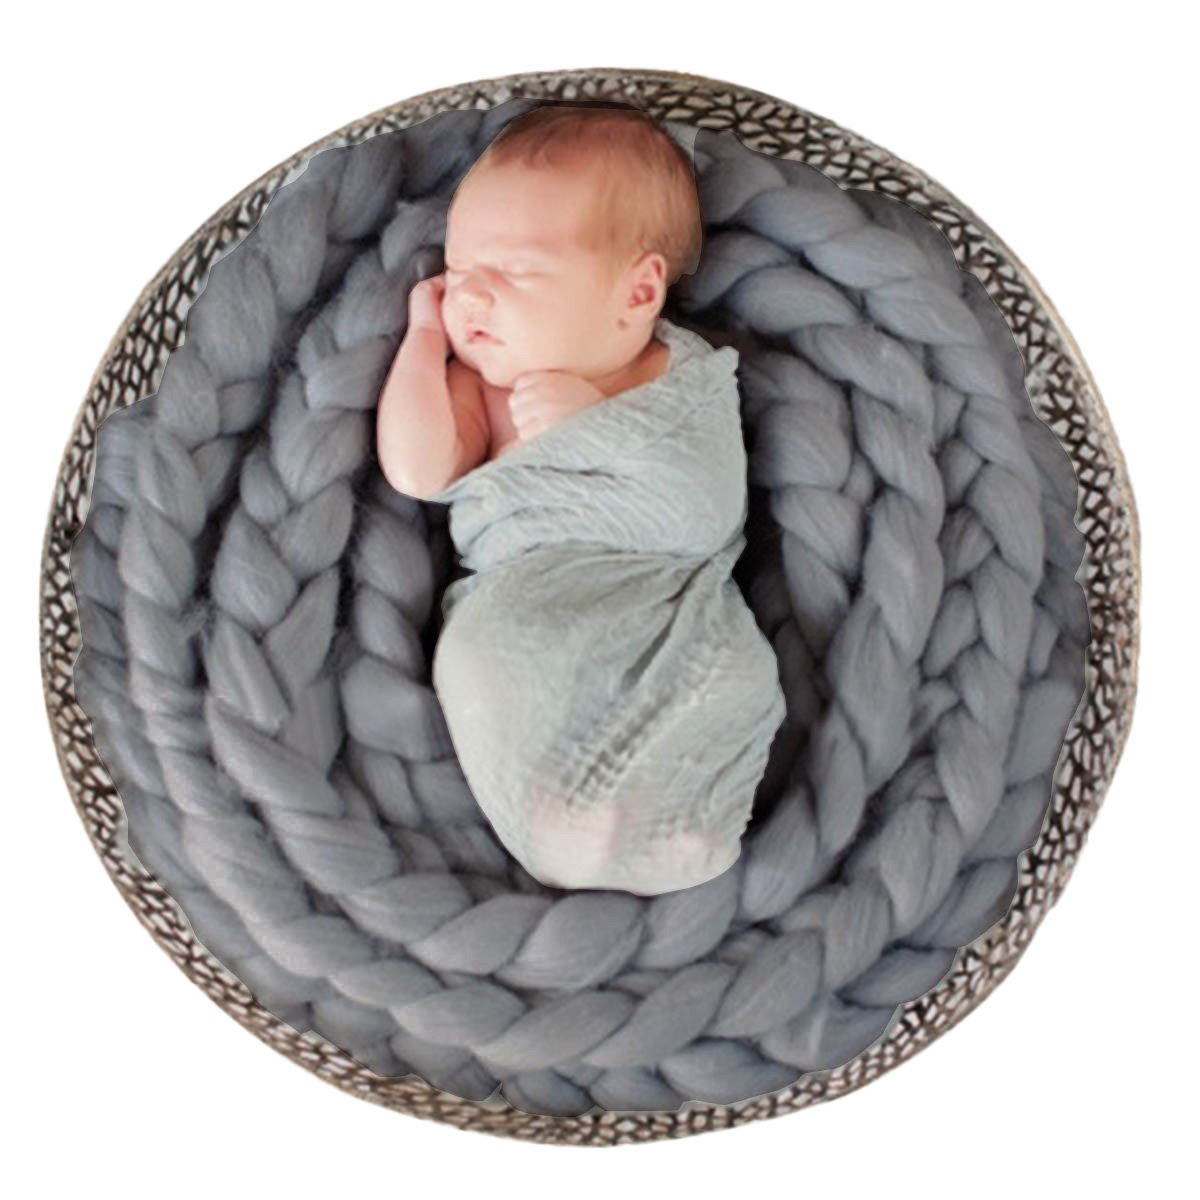 Newborn Photography Basket Braid Wool Wrap Baby Photo Props - Grey by Happy Cherry